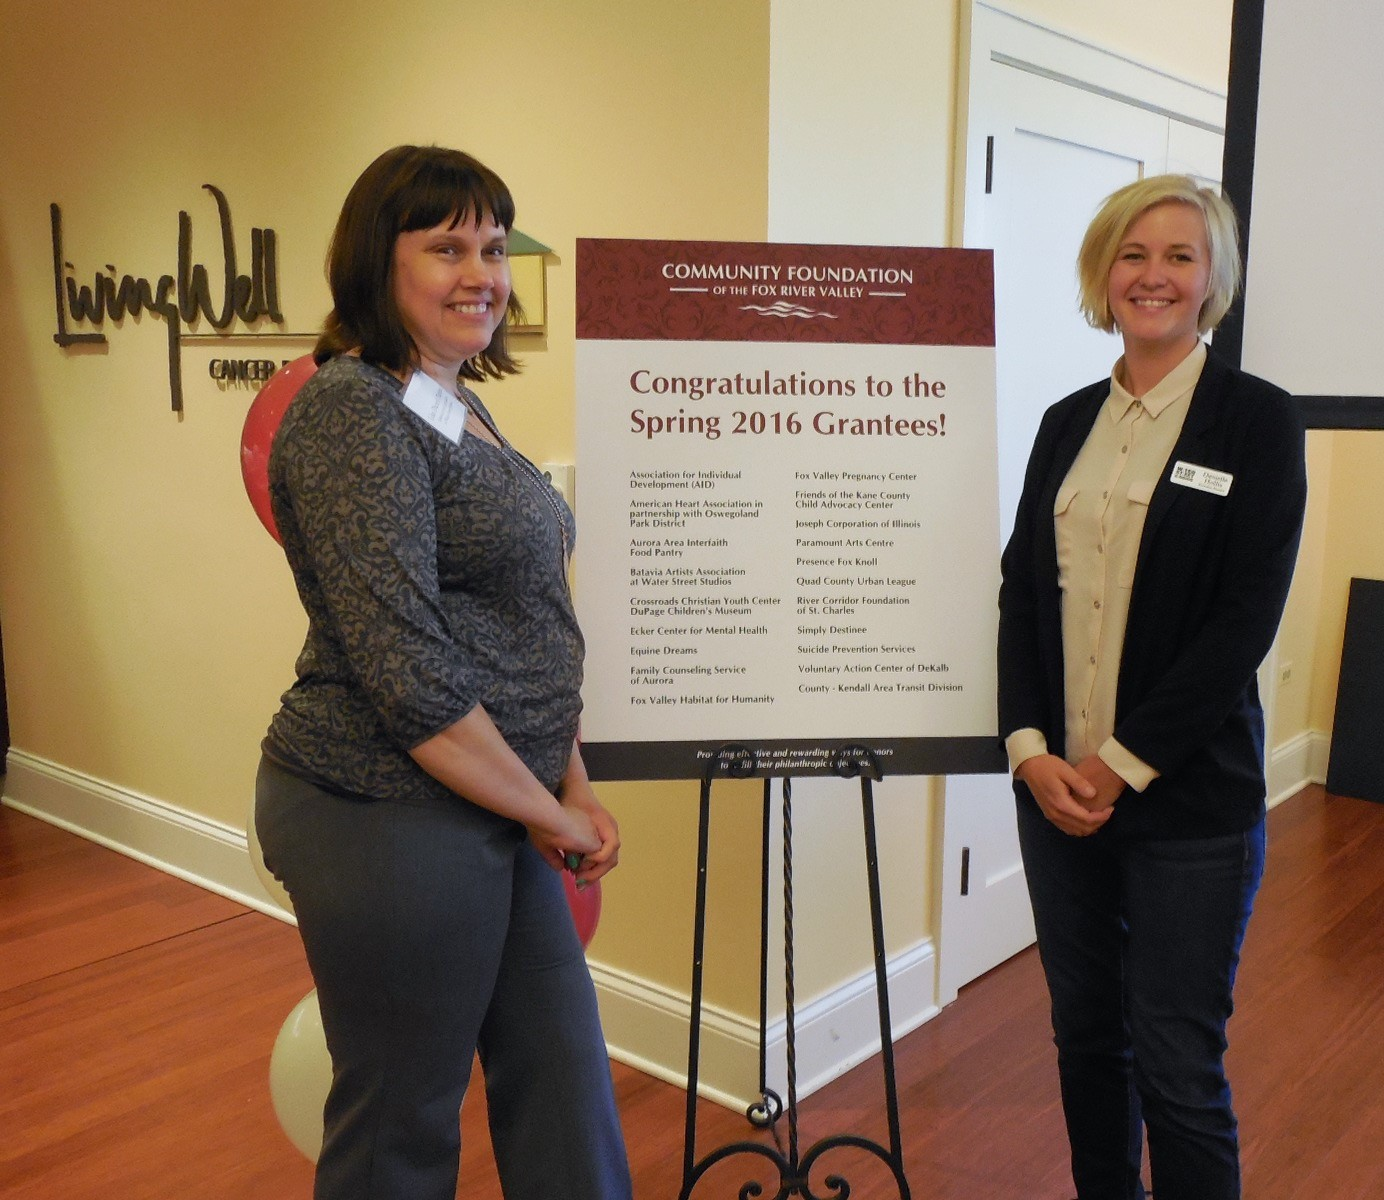 Spring 2016 Grantee Recognition Ceremony Community